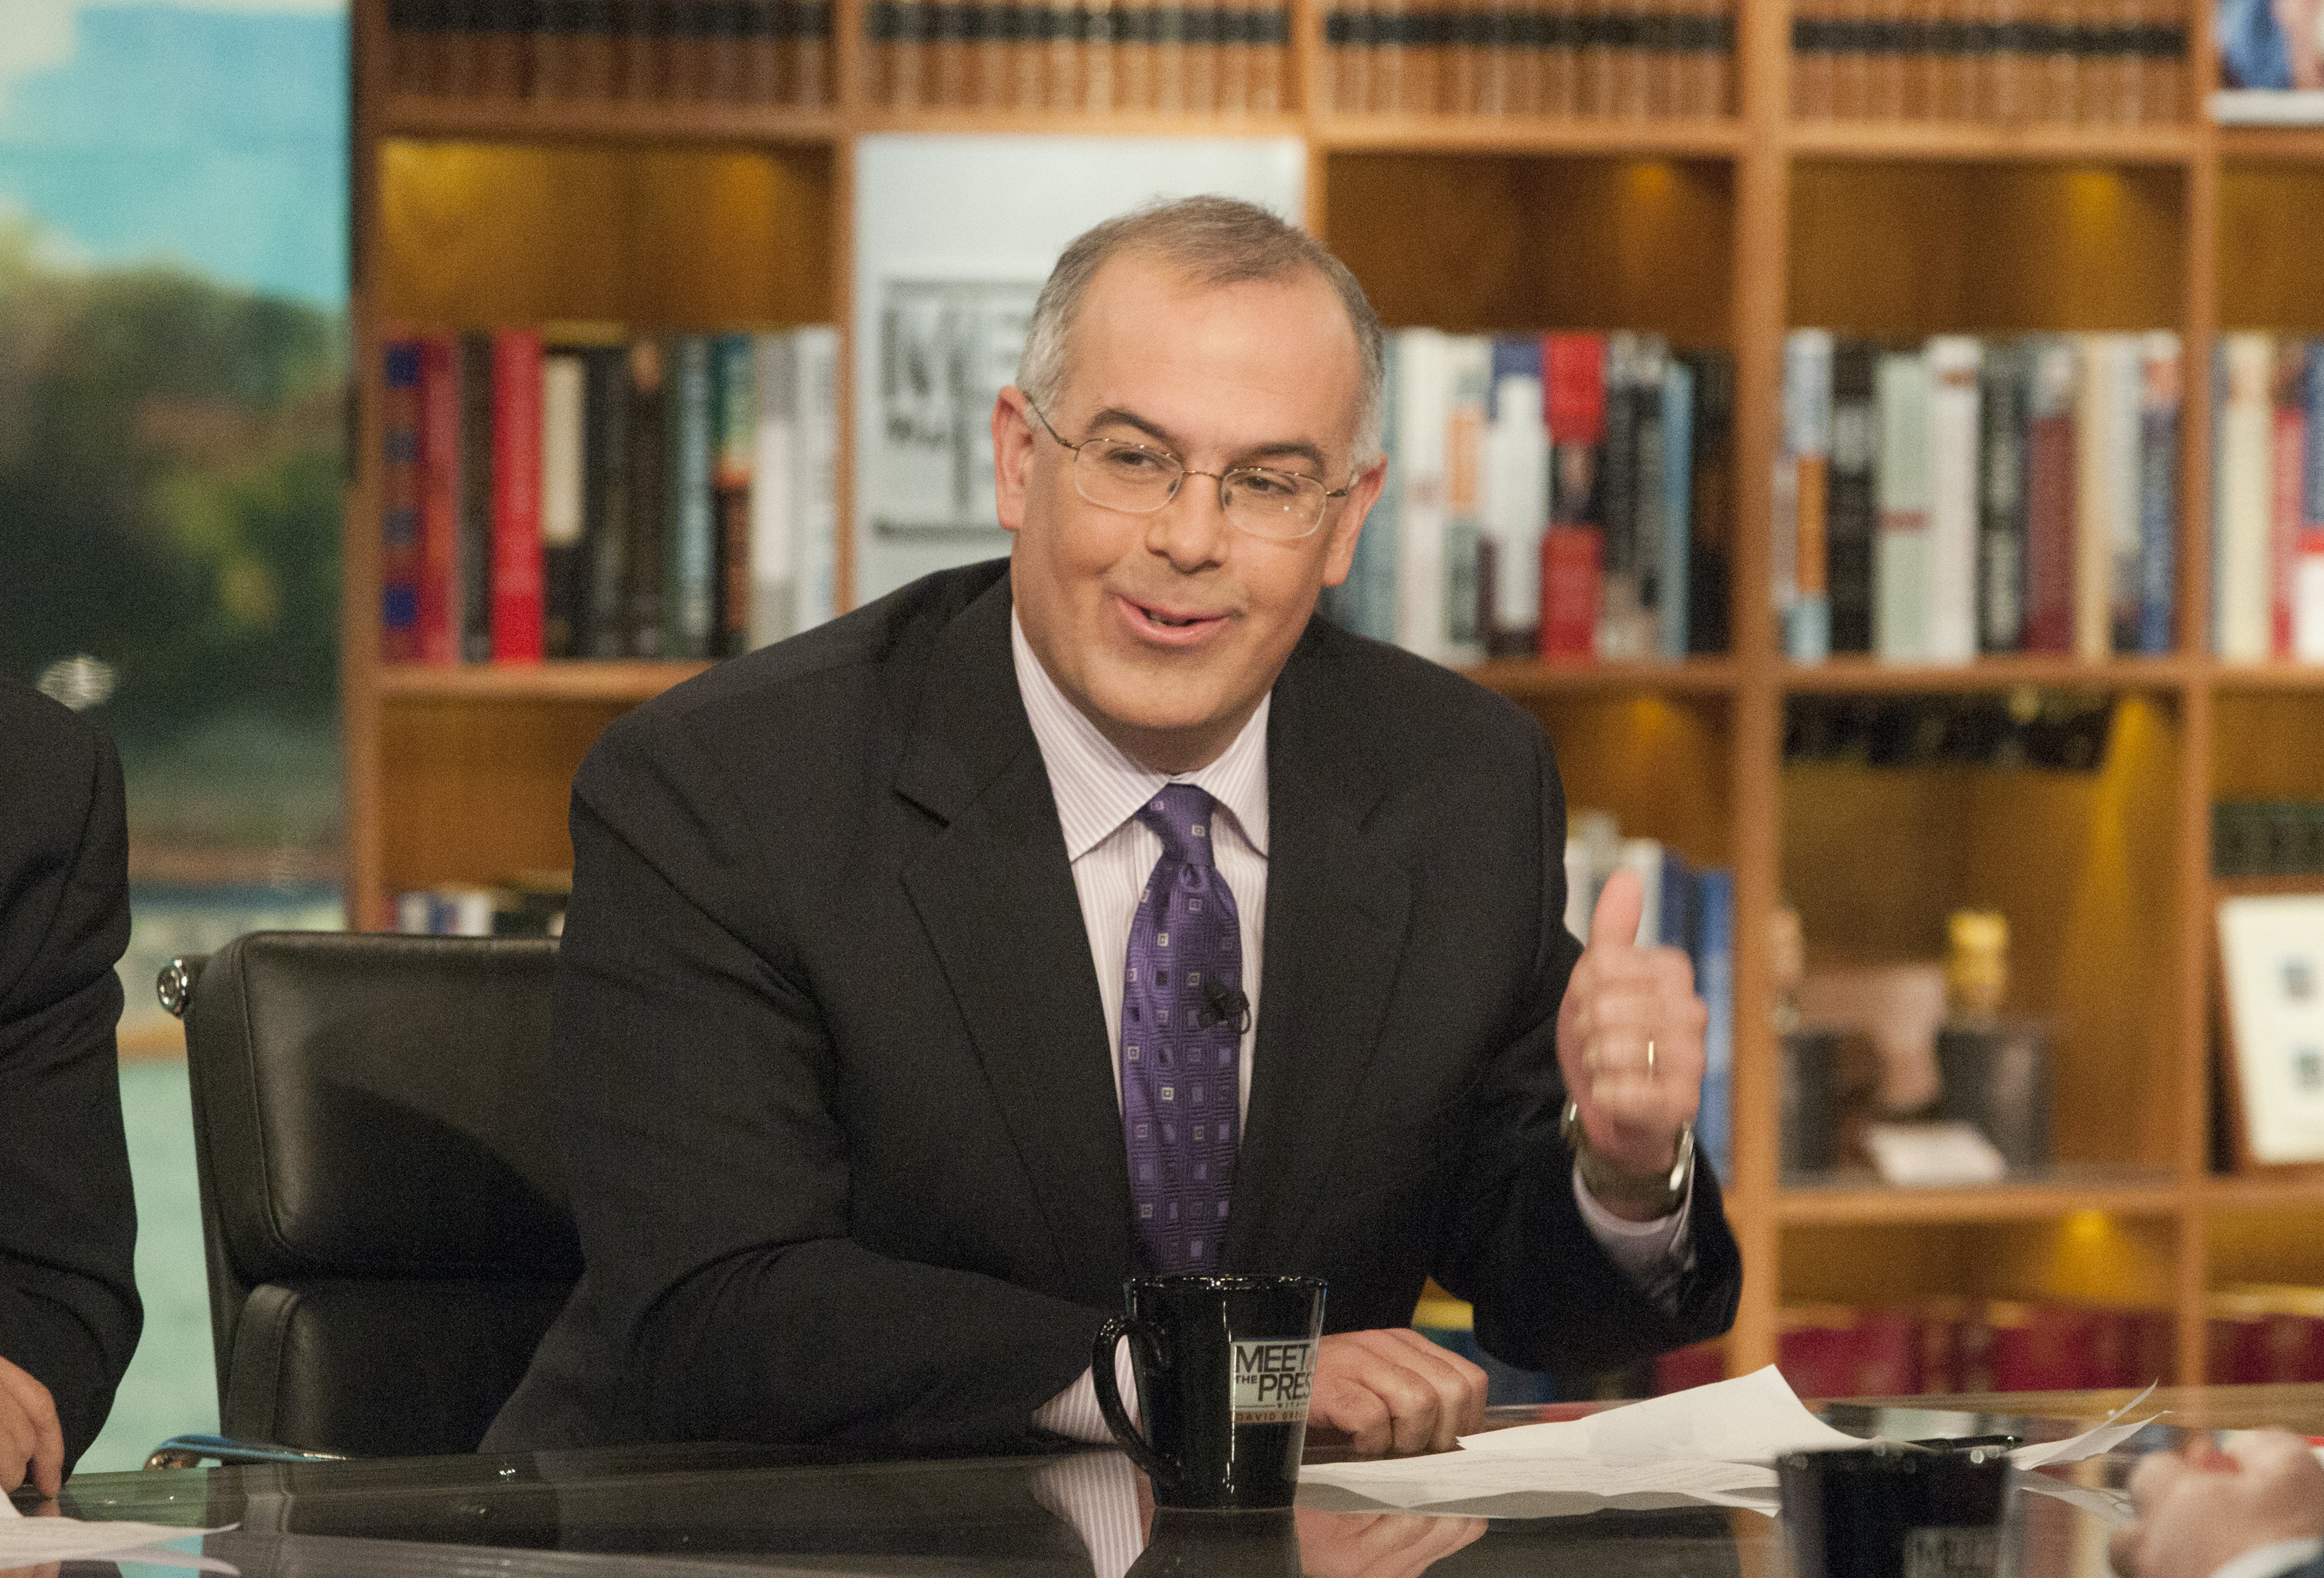 David-Brooks-NBCNBC-NewsWire-via-AP-Images